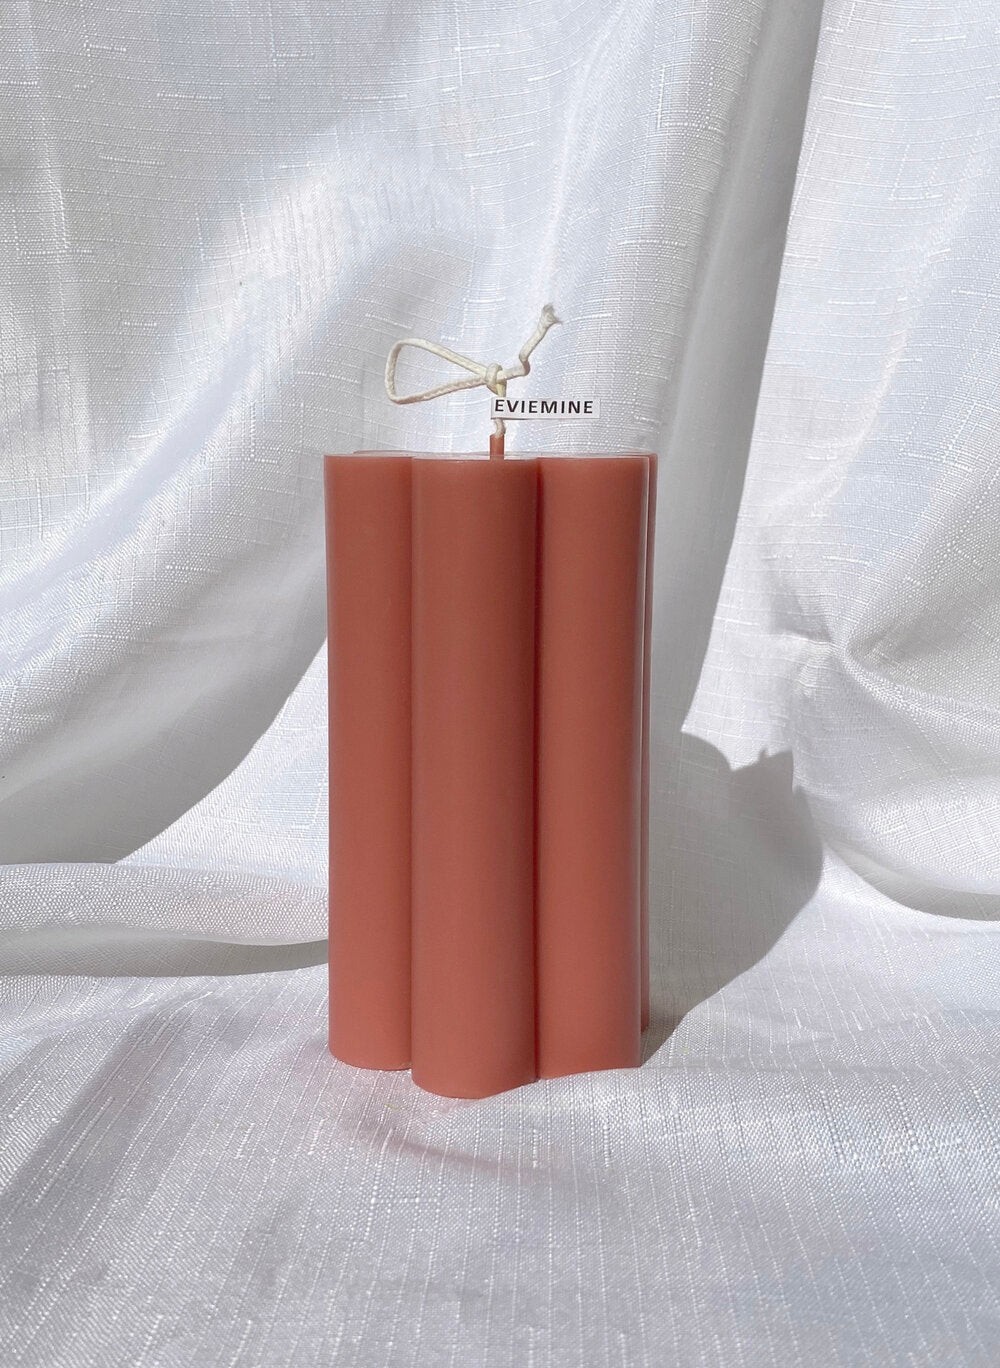 Evie Mine Large Daisy Pillar Candle - Pink Rose | Dusty Rose